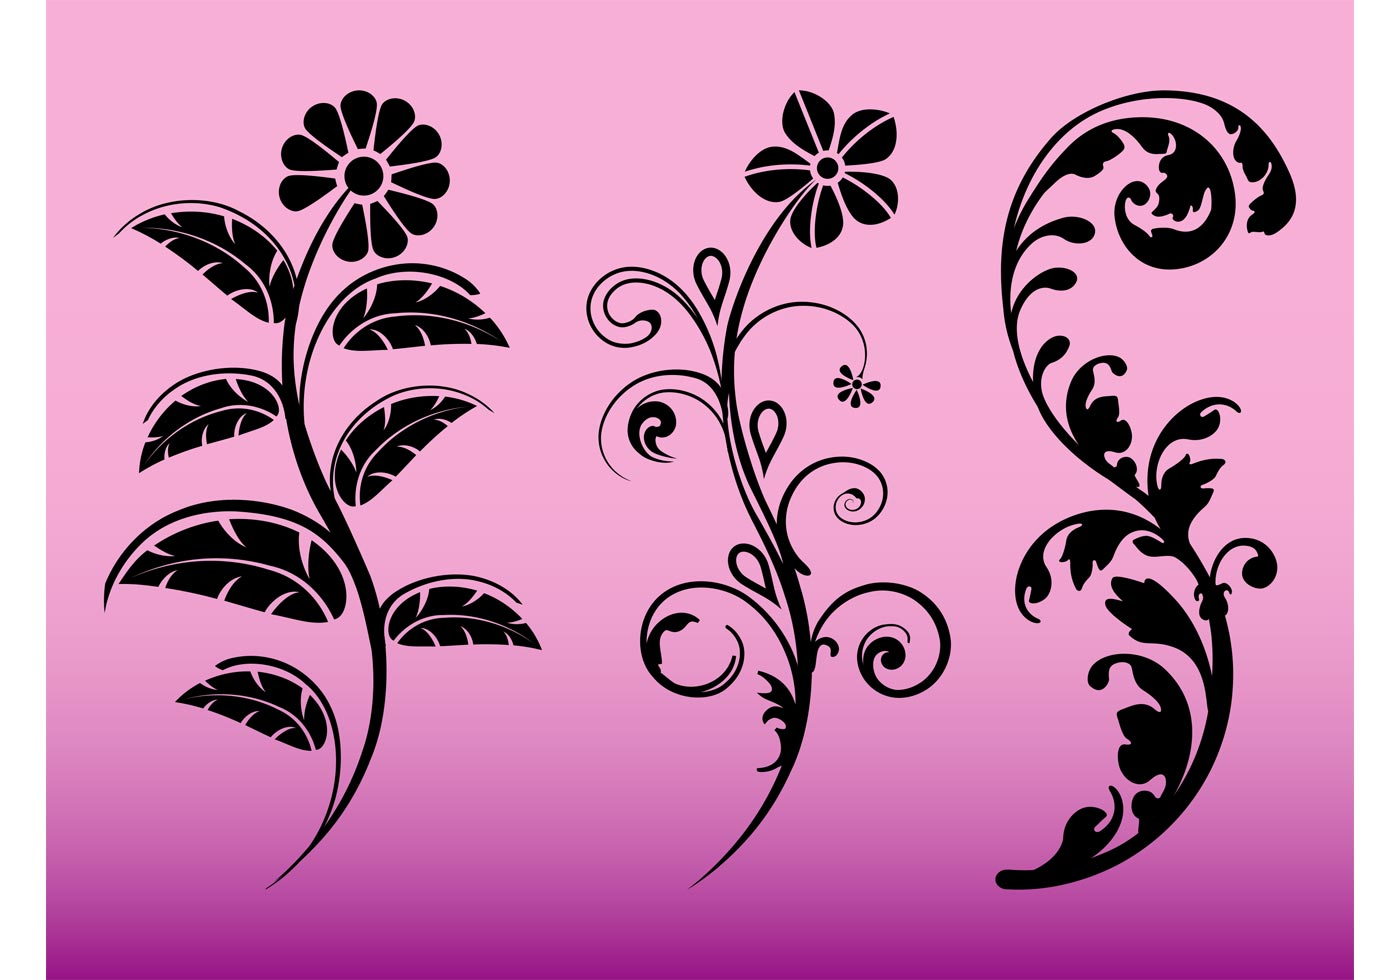 Floral Silhouette Painting Pictures to Pin on Pinterest ...